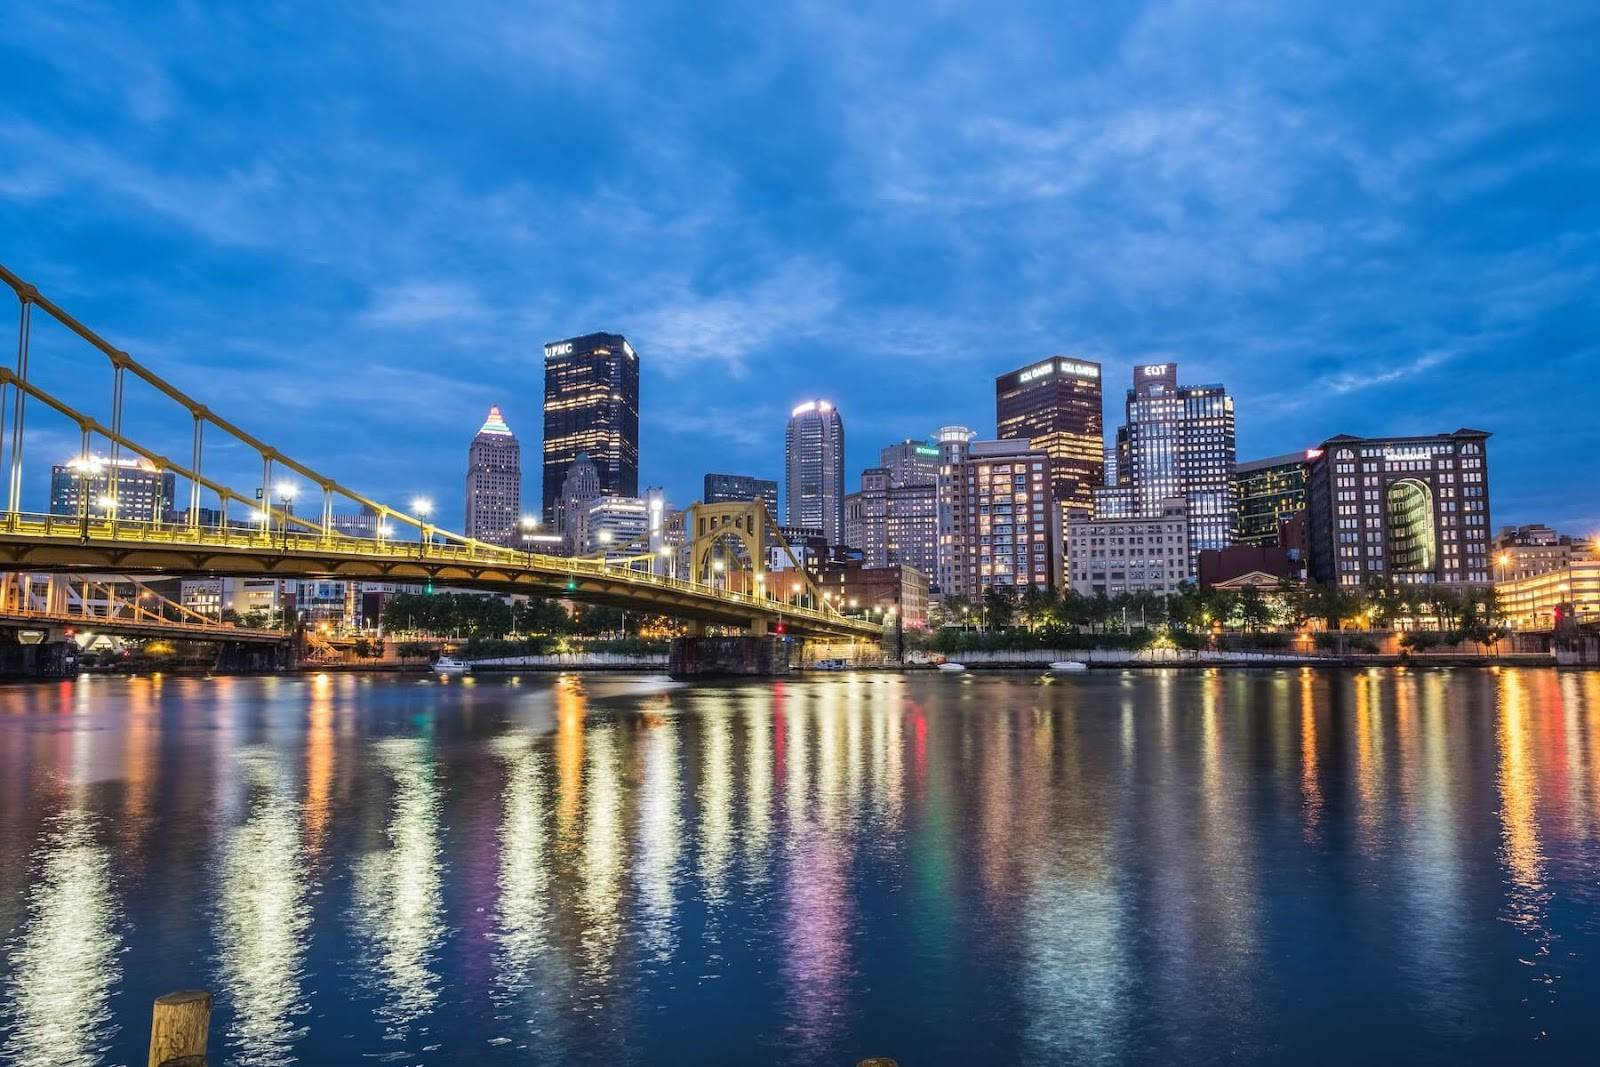 8 Not-Too-Touristy Places in Pittsburgh to Check Out